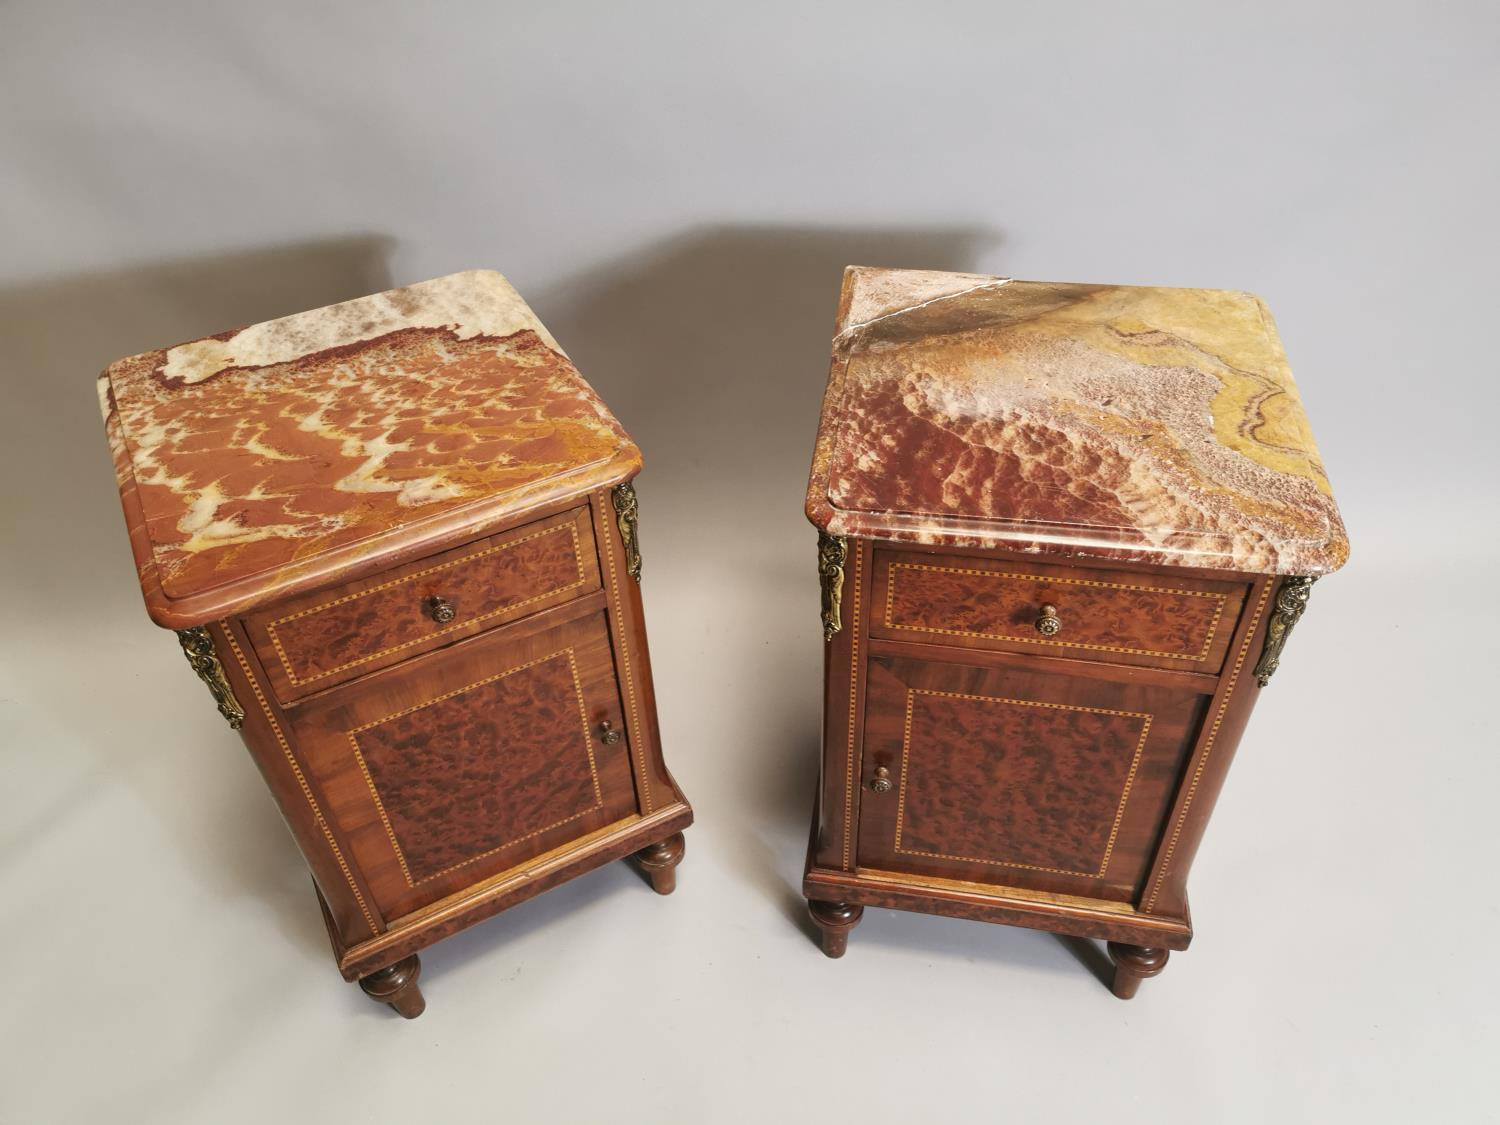 Pair of 19th. C. kingwood and burr walnut bedside lockers. - Image 3 of 8